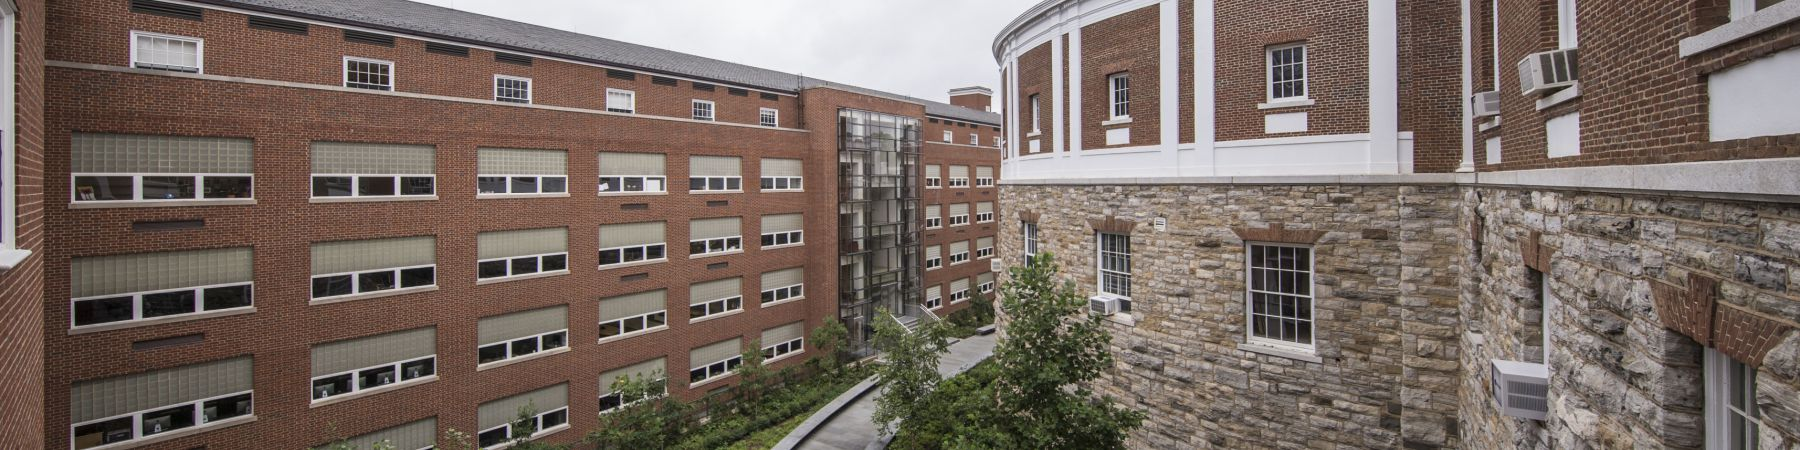 Cabell Courtyard with grey skies and greenery